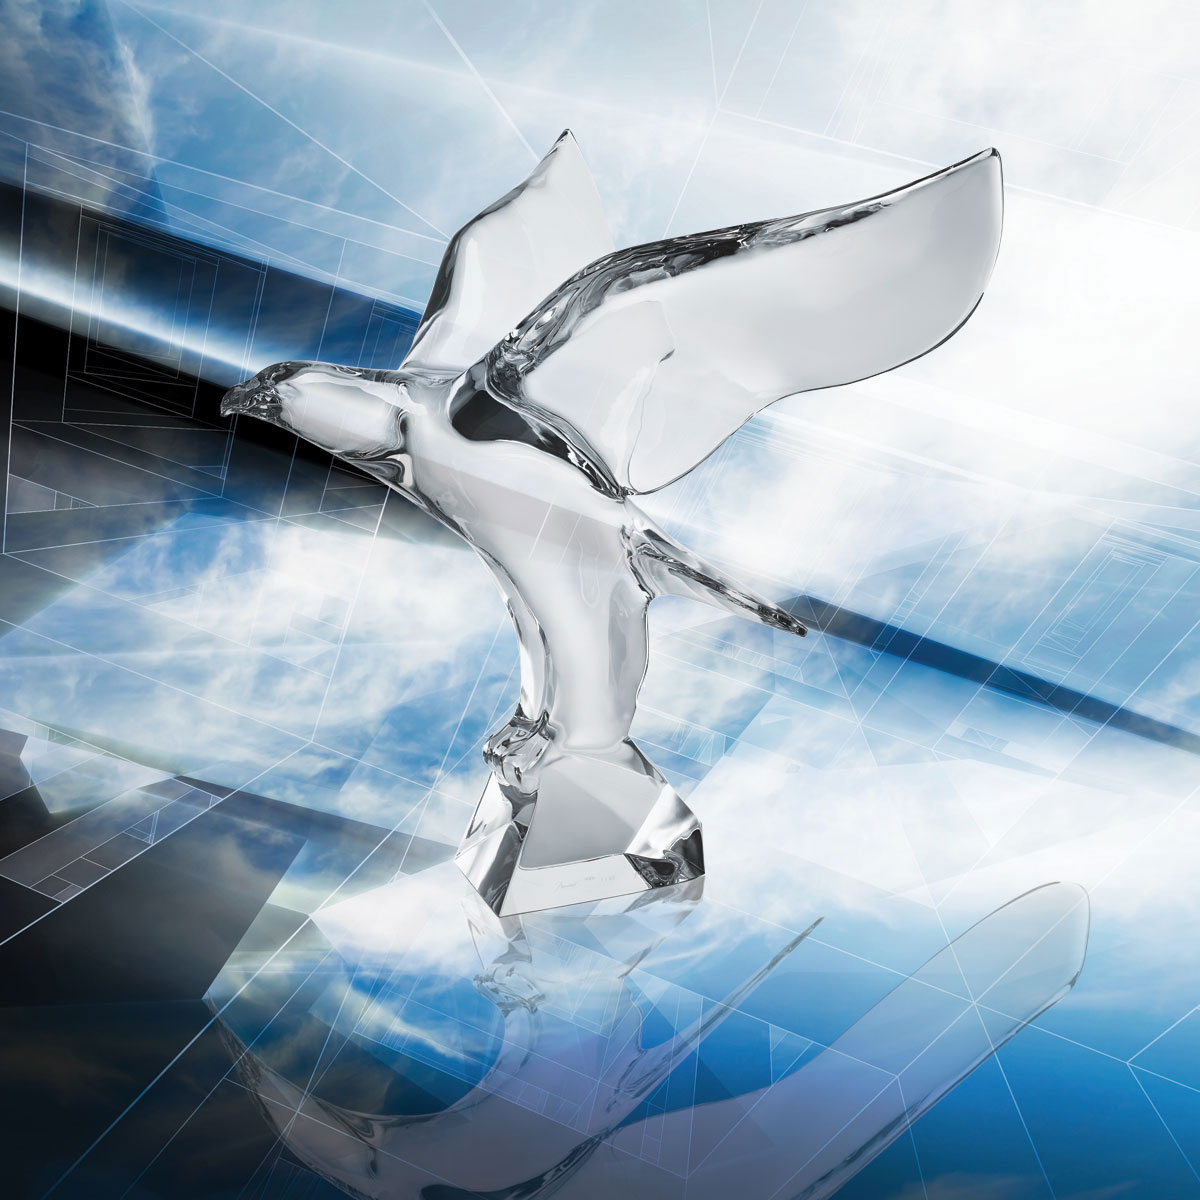 Baccarat Crystal, Aigle Aquila Limited Edition Of 50